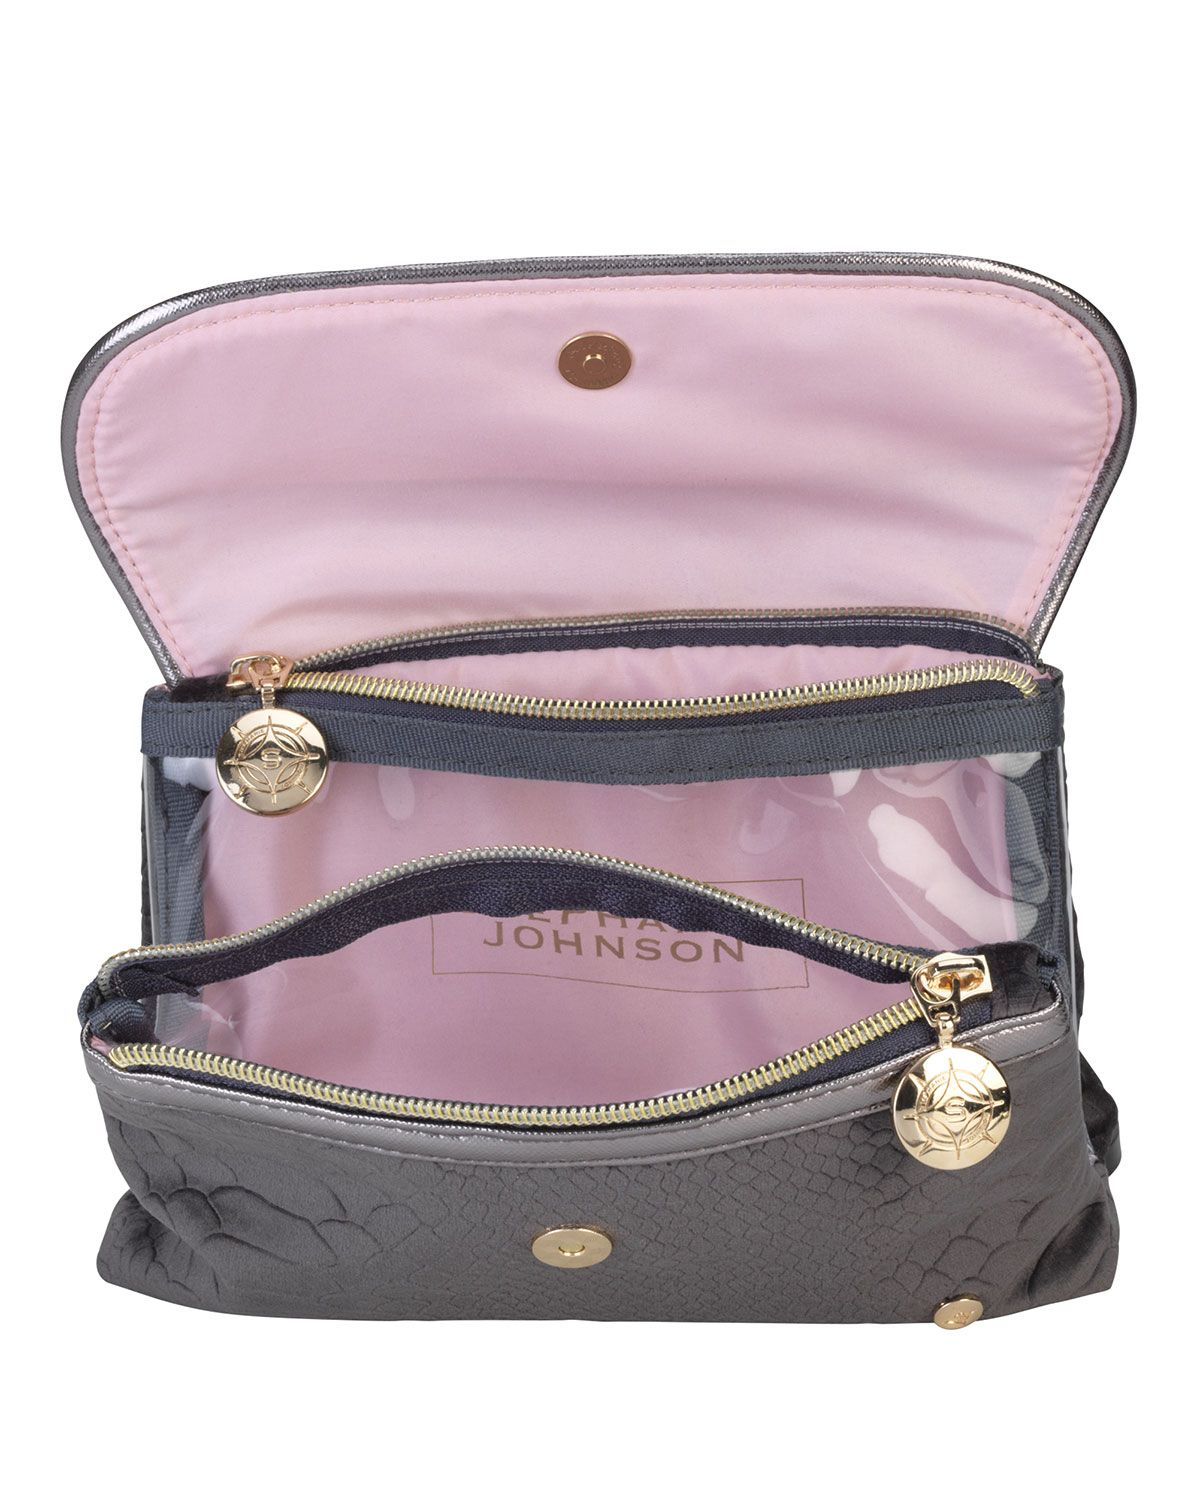 Pin by Susy Cecco on Luxury cosmetic beauty bags. (With